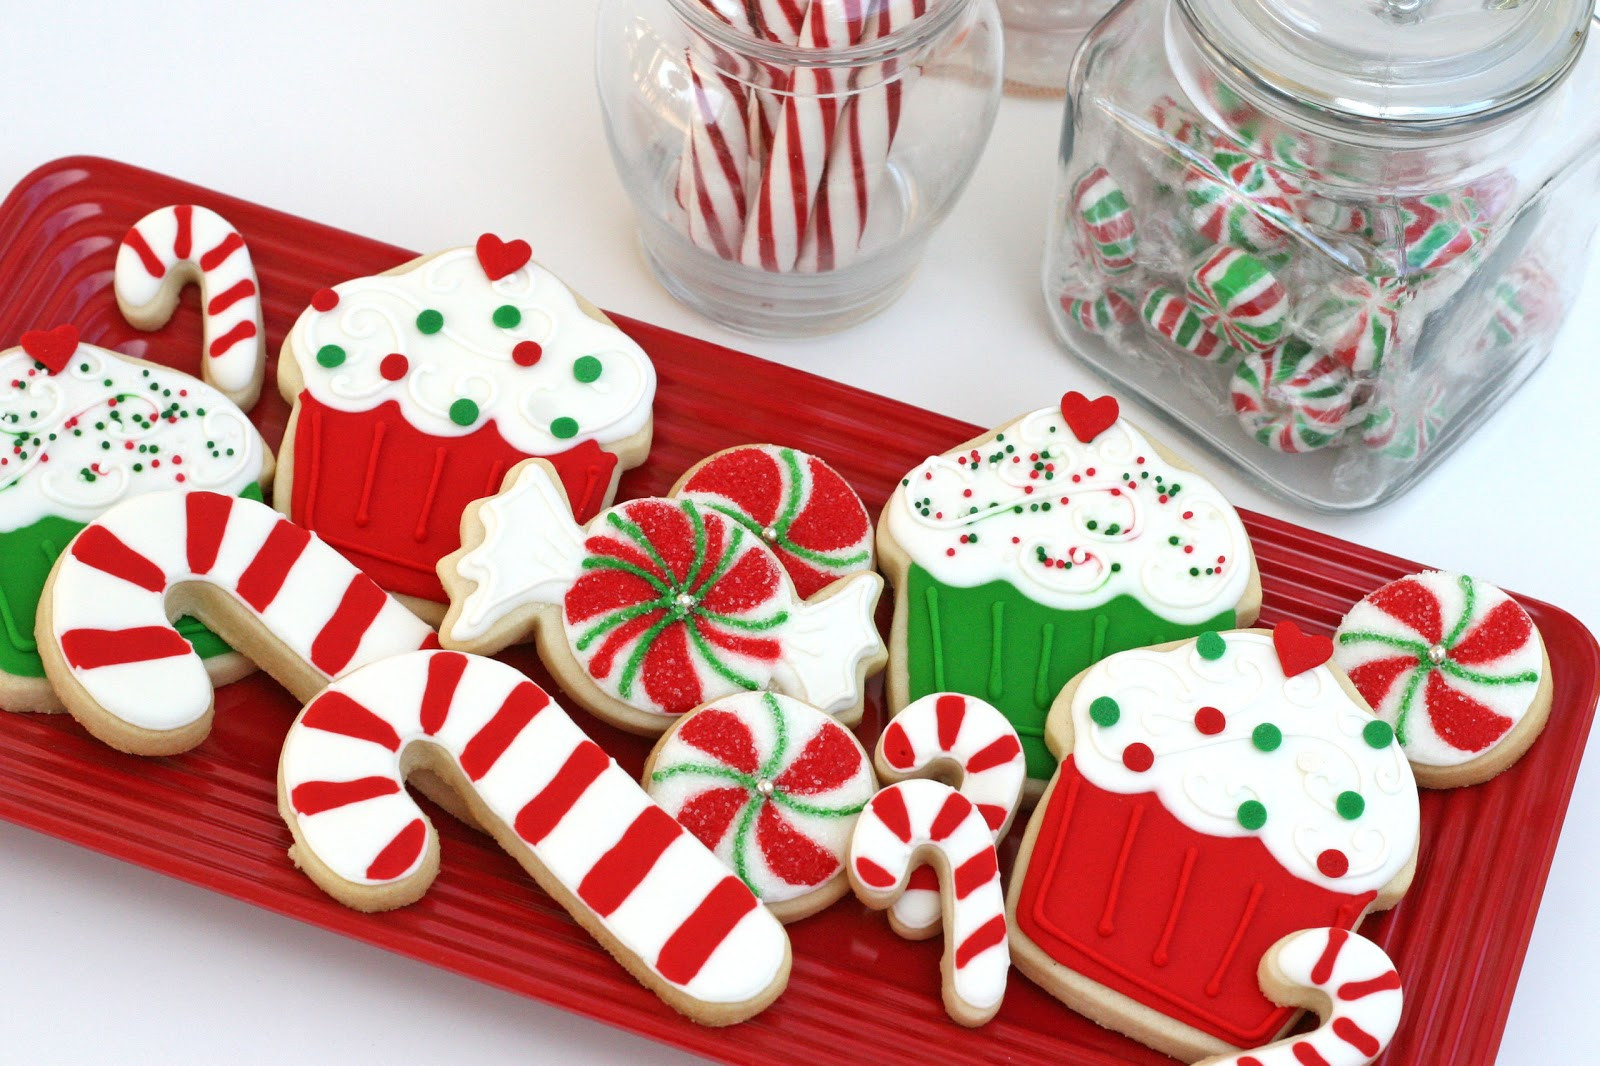 Best Decorated Christmas Cookies  Christmas Cookies Galore Glorious Treats